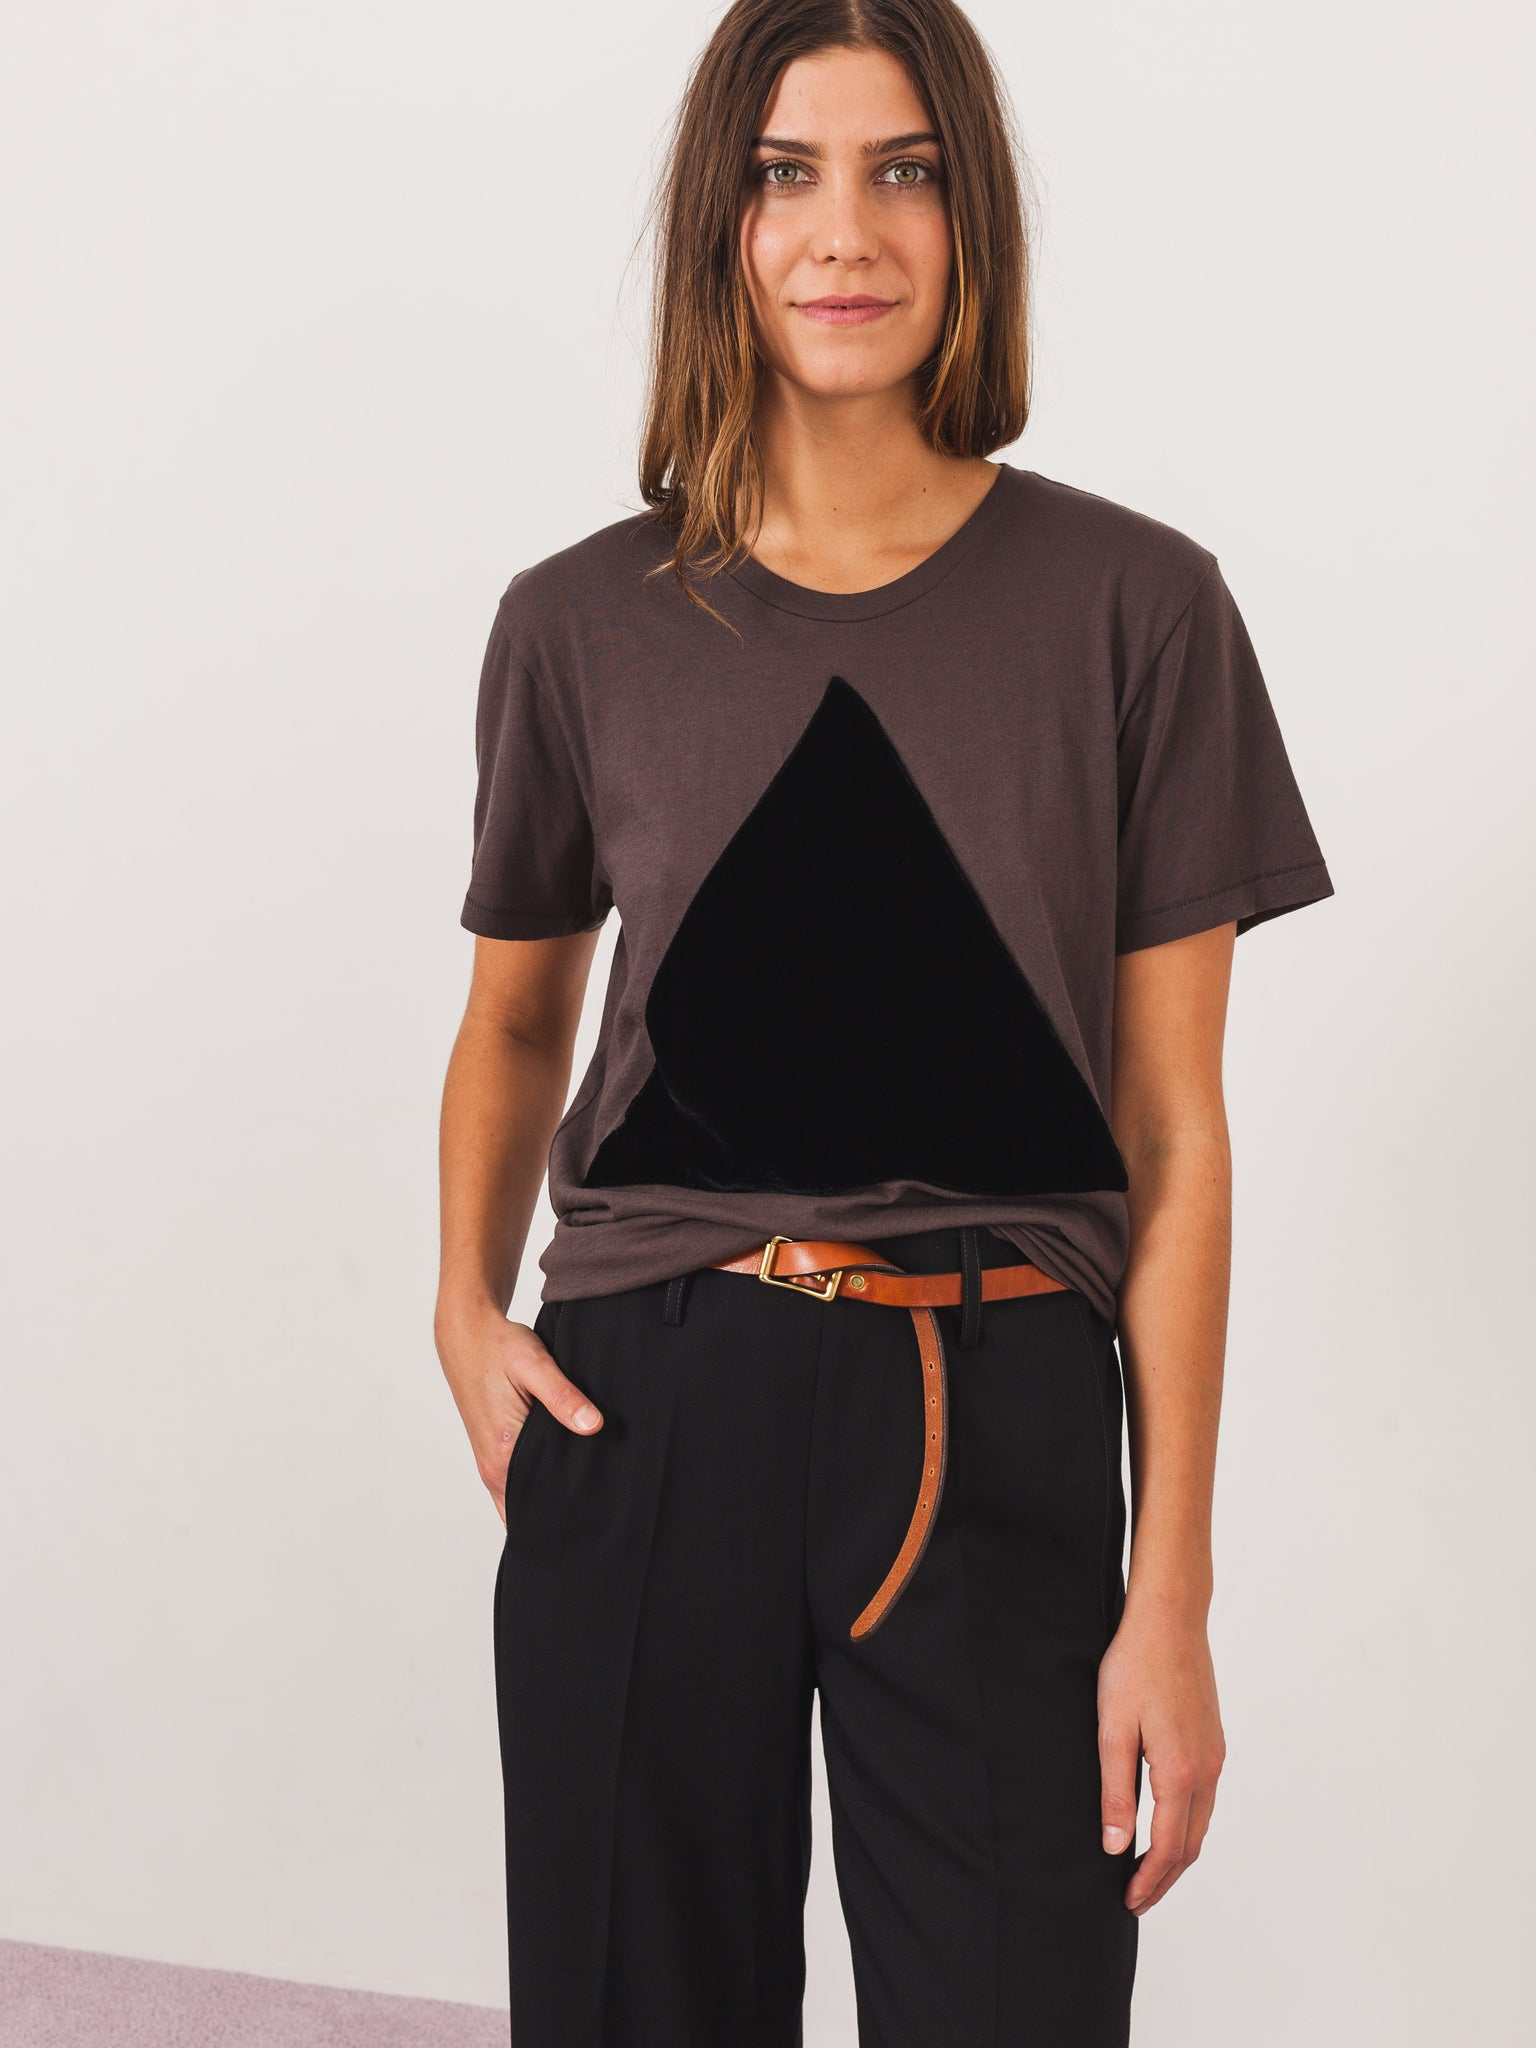 a59a0aa98fb10b correll-correll-old-black-velvet-triangle-shirt-on-